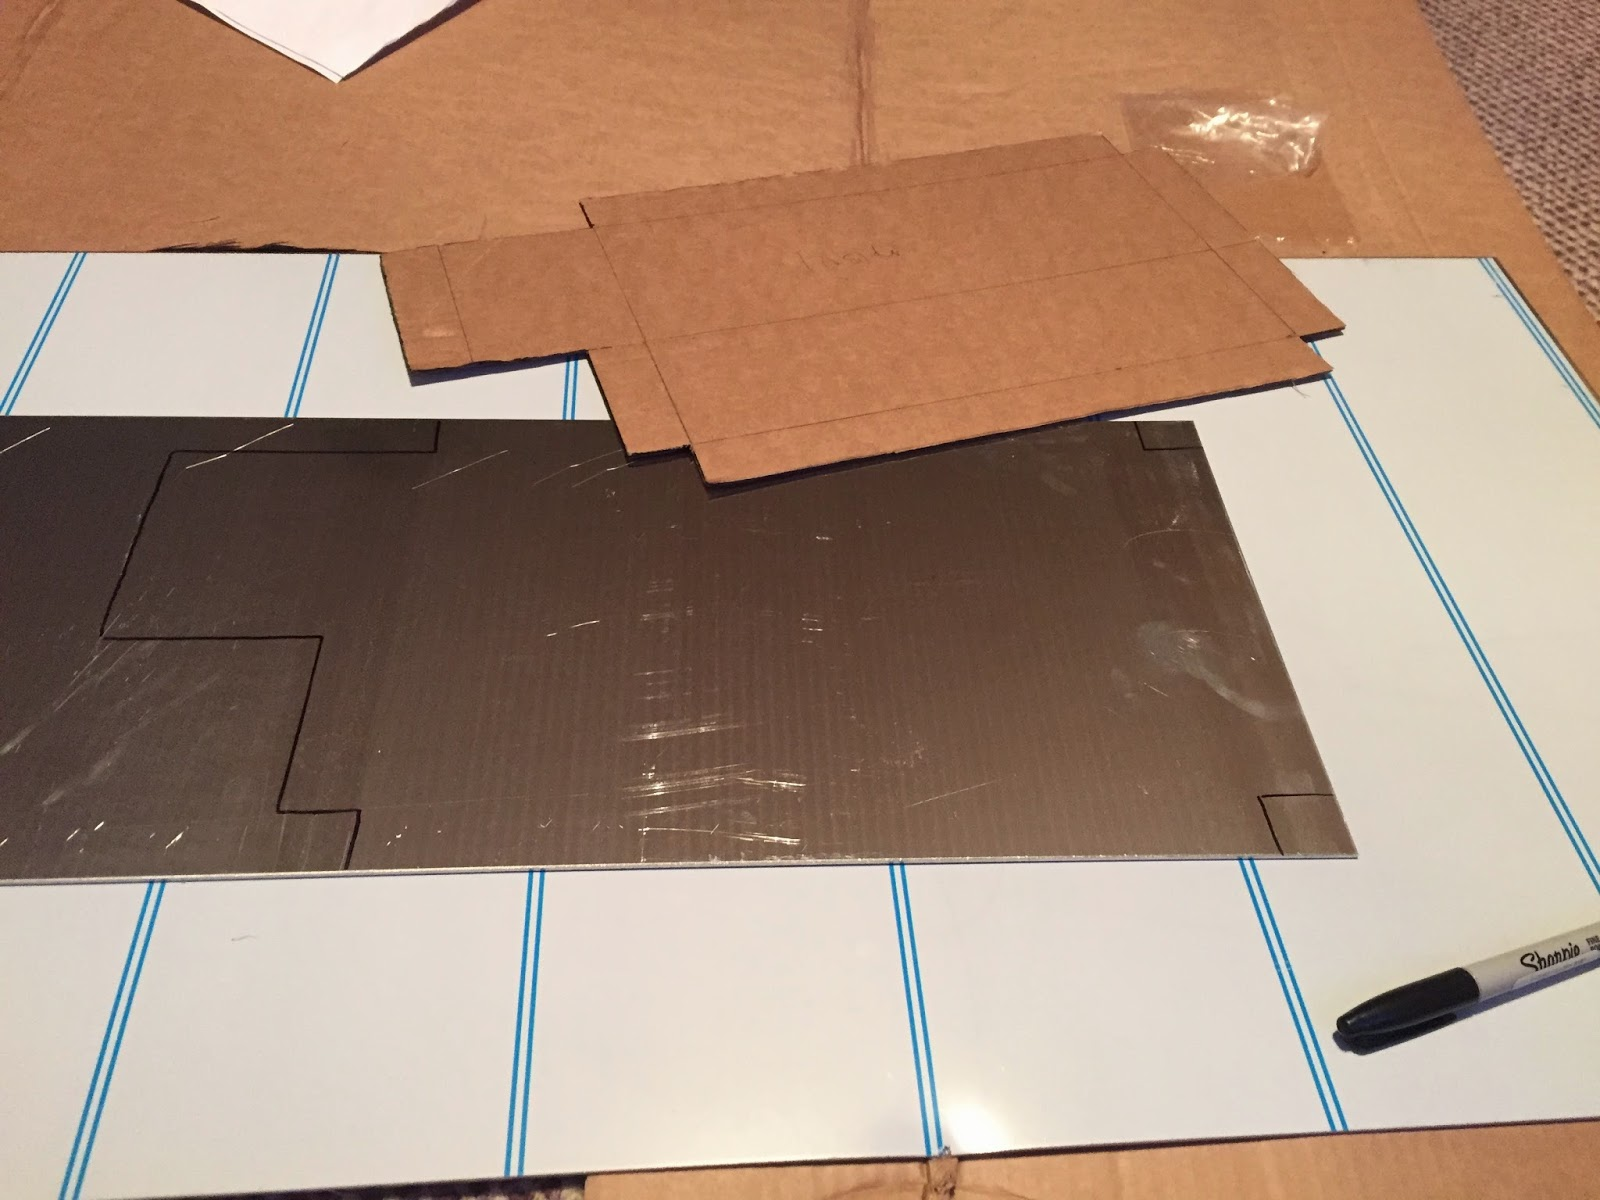 My Cardboard Template Cut And Pushed Into Place